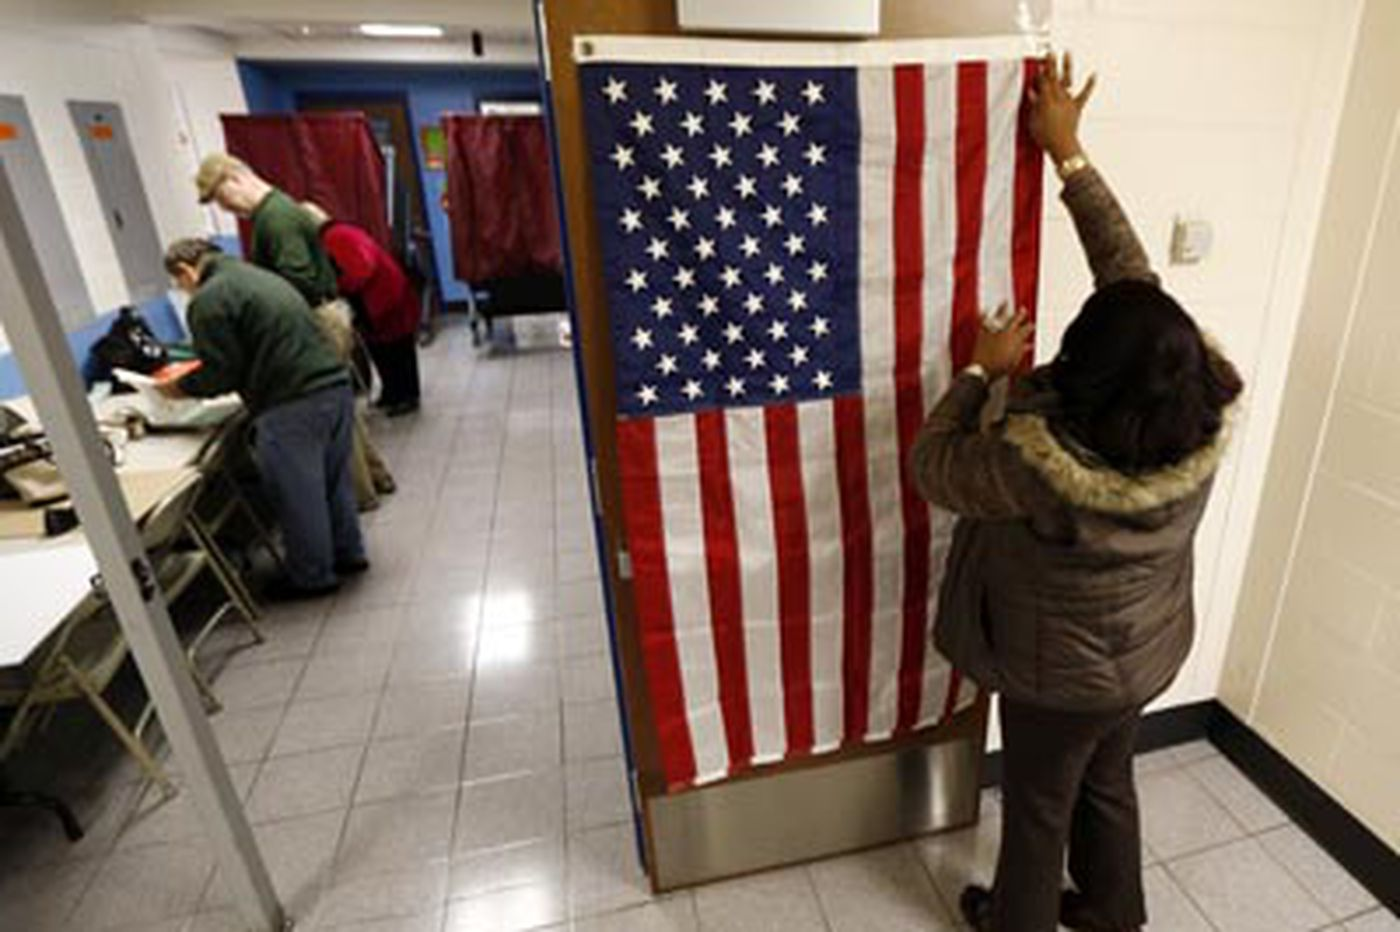 Congressmen: You have no right to vote